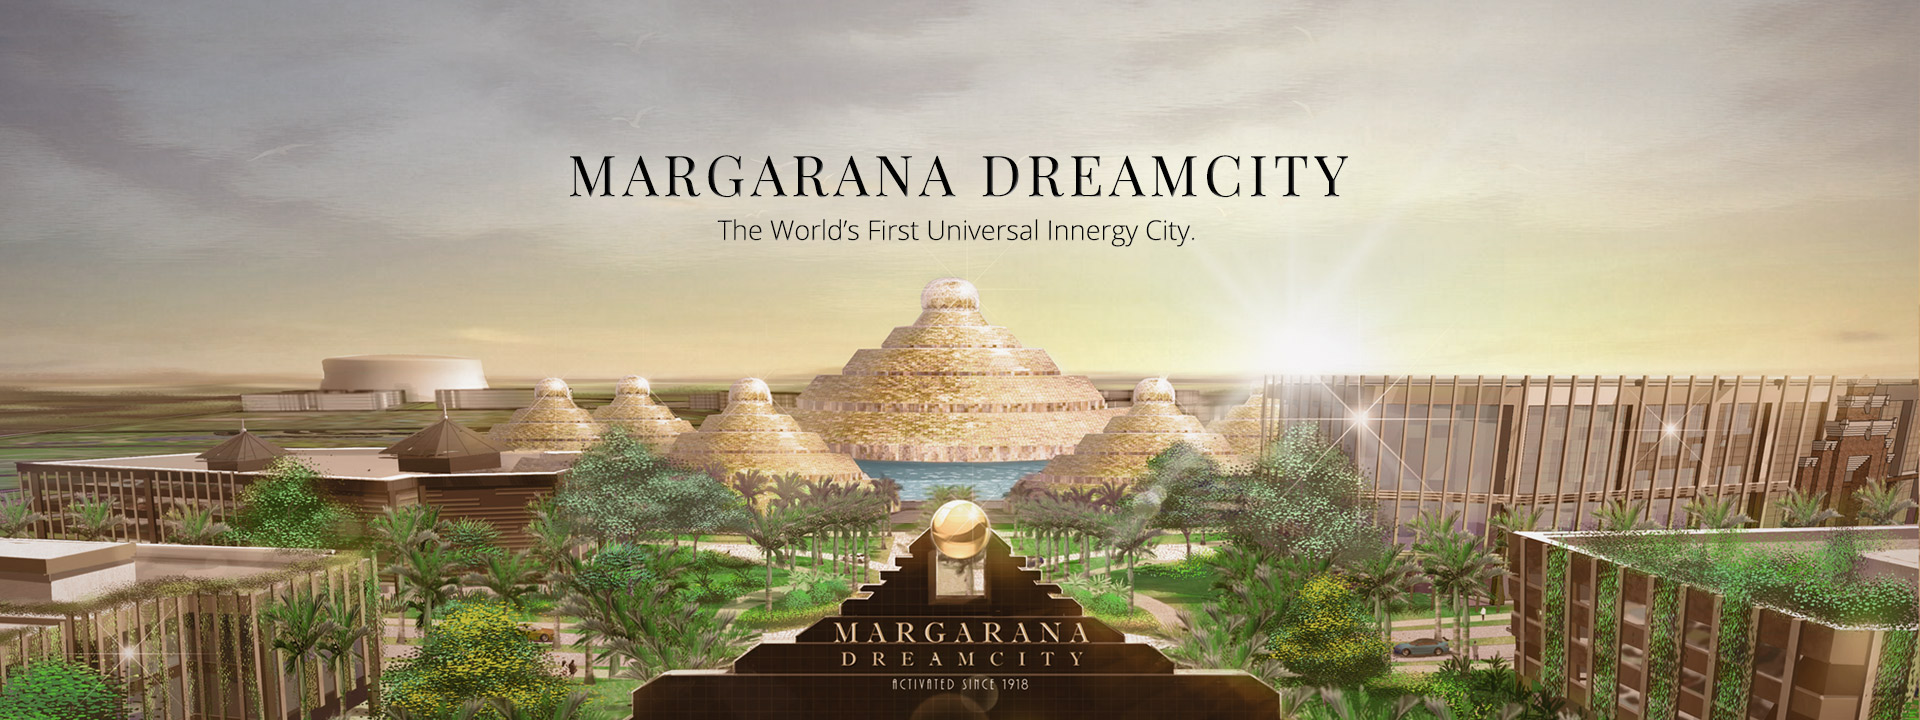 The World's First Universal Innergy City